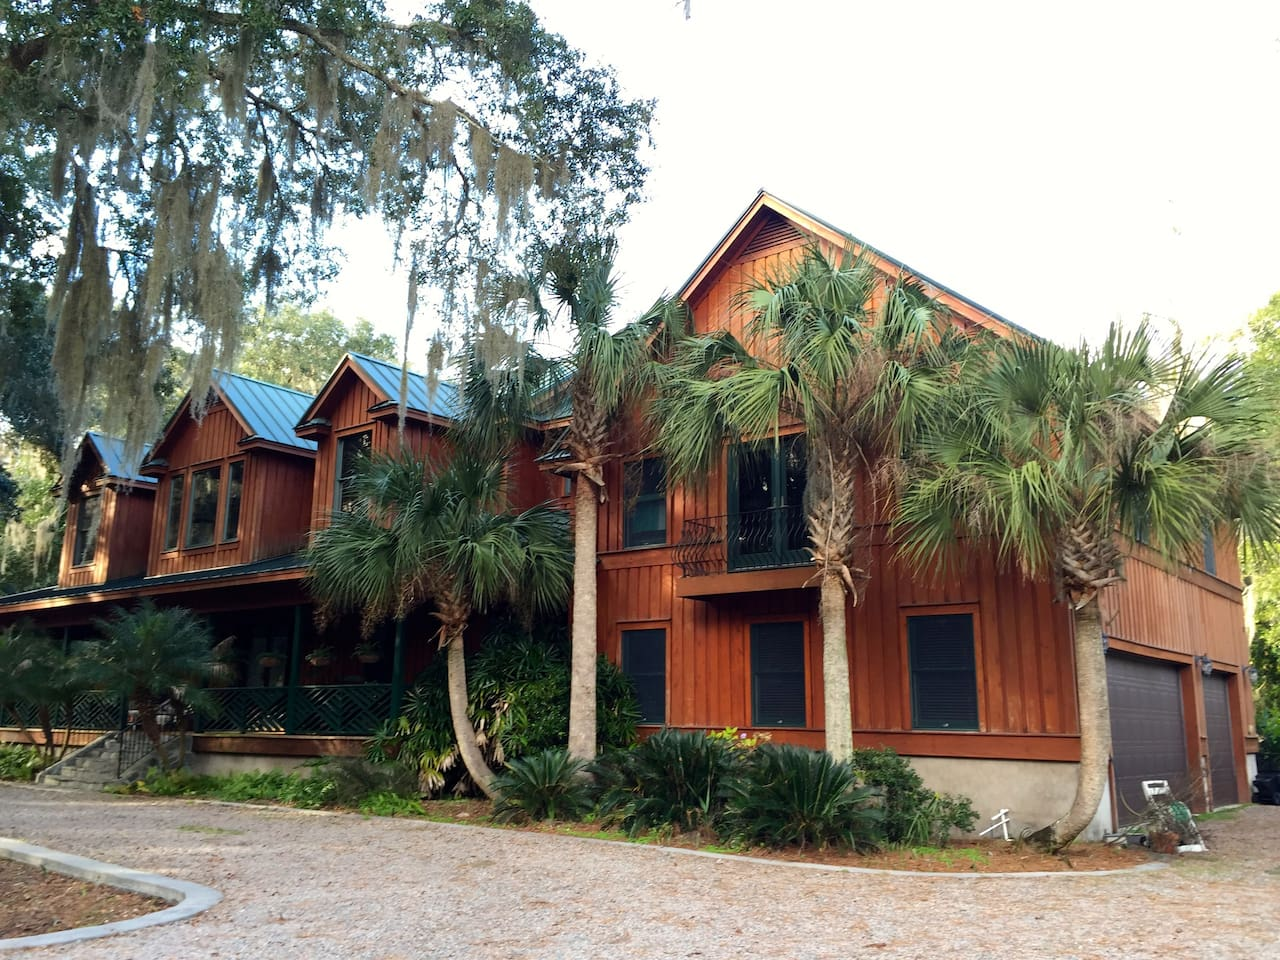 Discover true Southern hospitality in our spacious cypress home. Its unique character comes from a combination of old Florida style and contemporary design. We built it ourselves and love to share it with our guests.